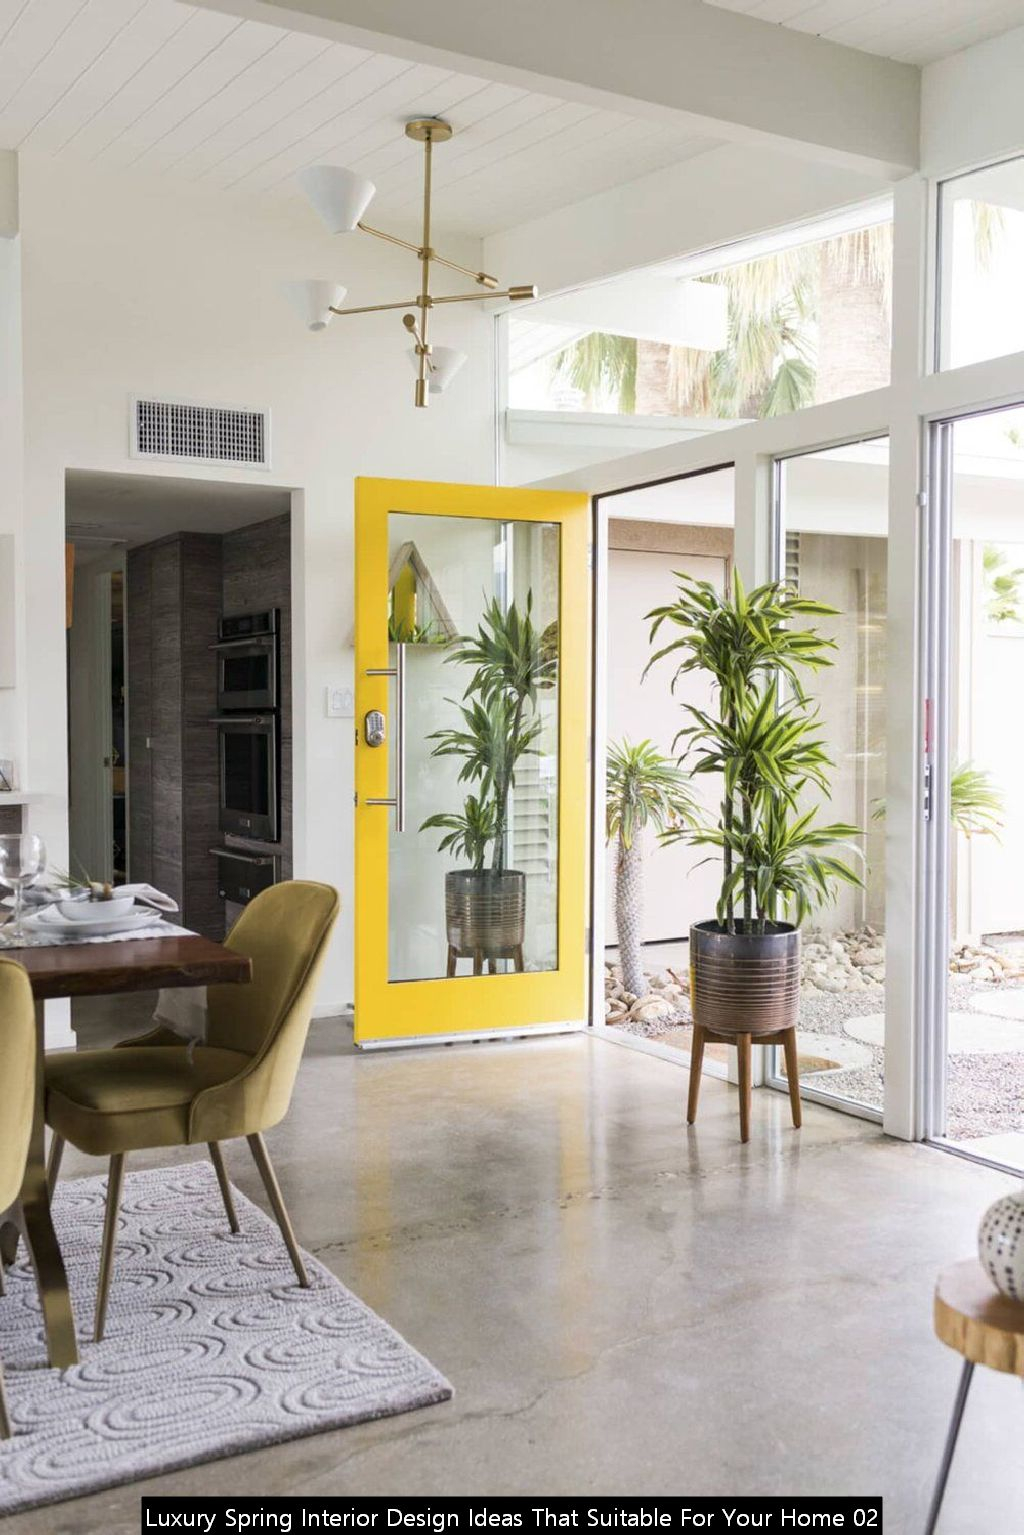 Luxury Spring Interior Design Ideas That Suitable For Your Home 02